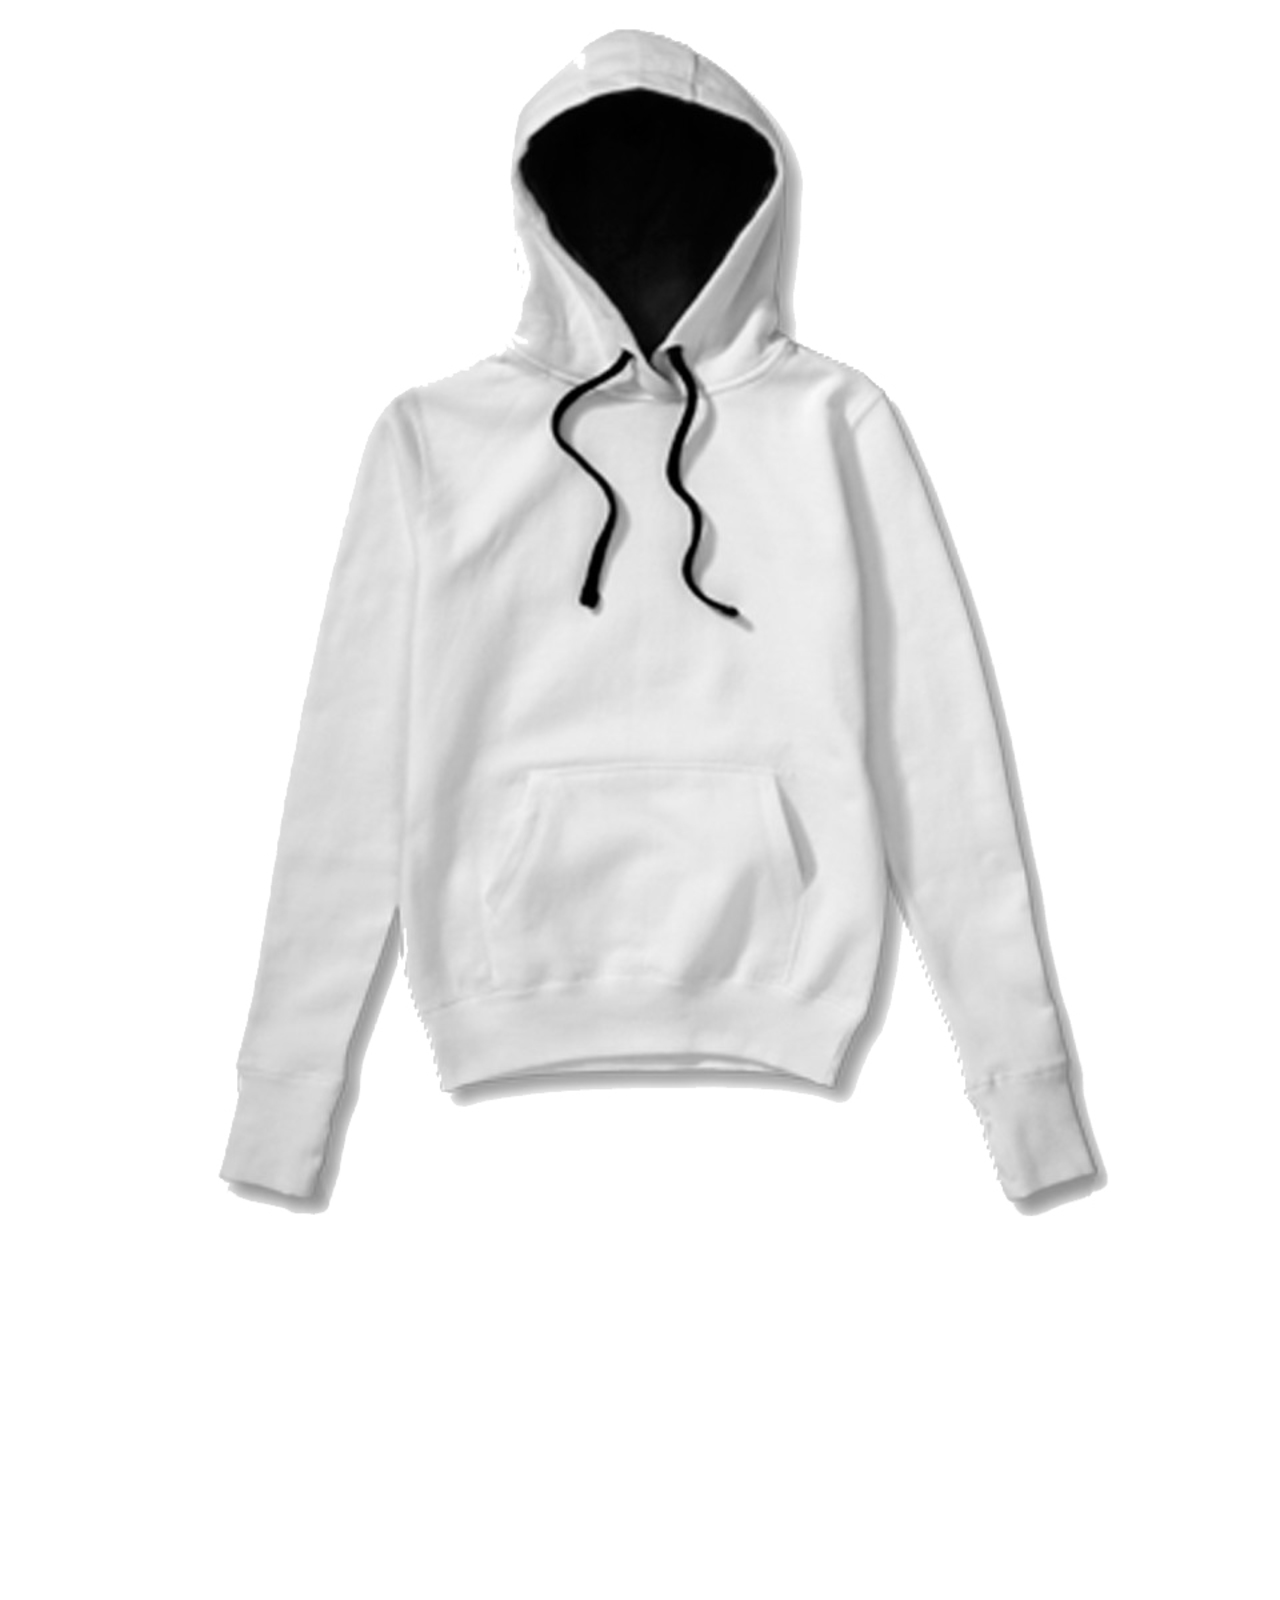 SG Ladies Contrast Hoodie Hooded Sweatshirt Women Plain Pullover ...